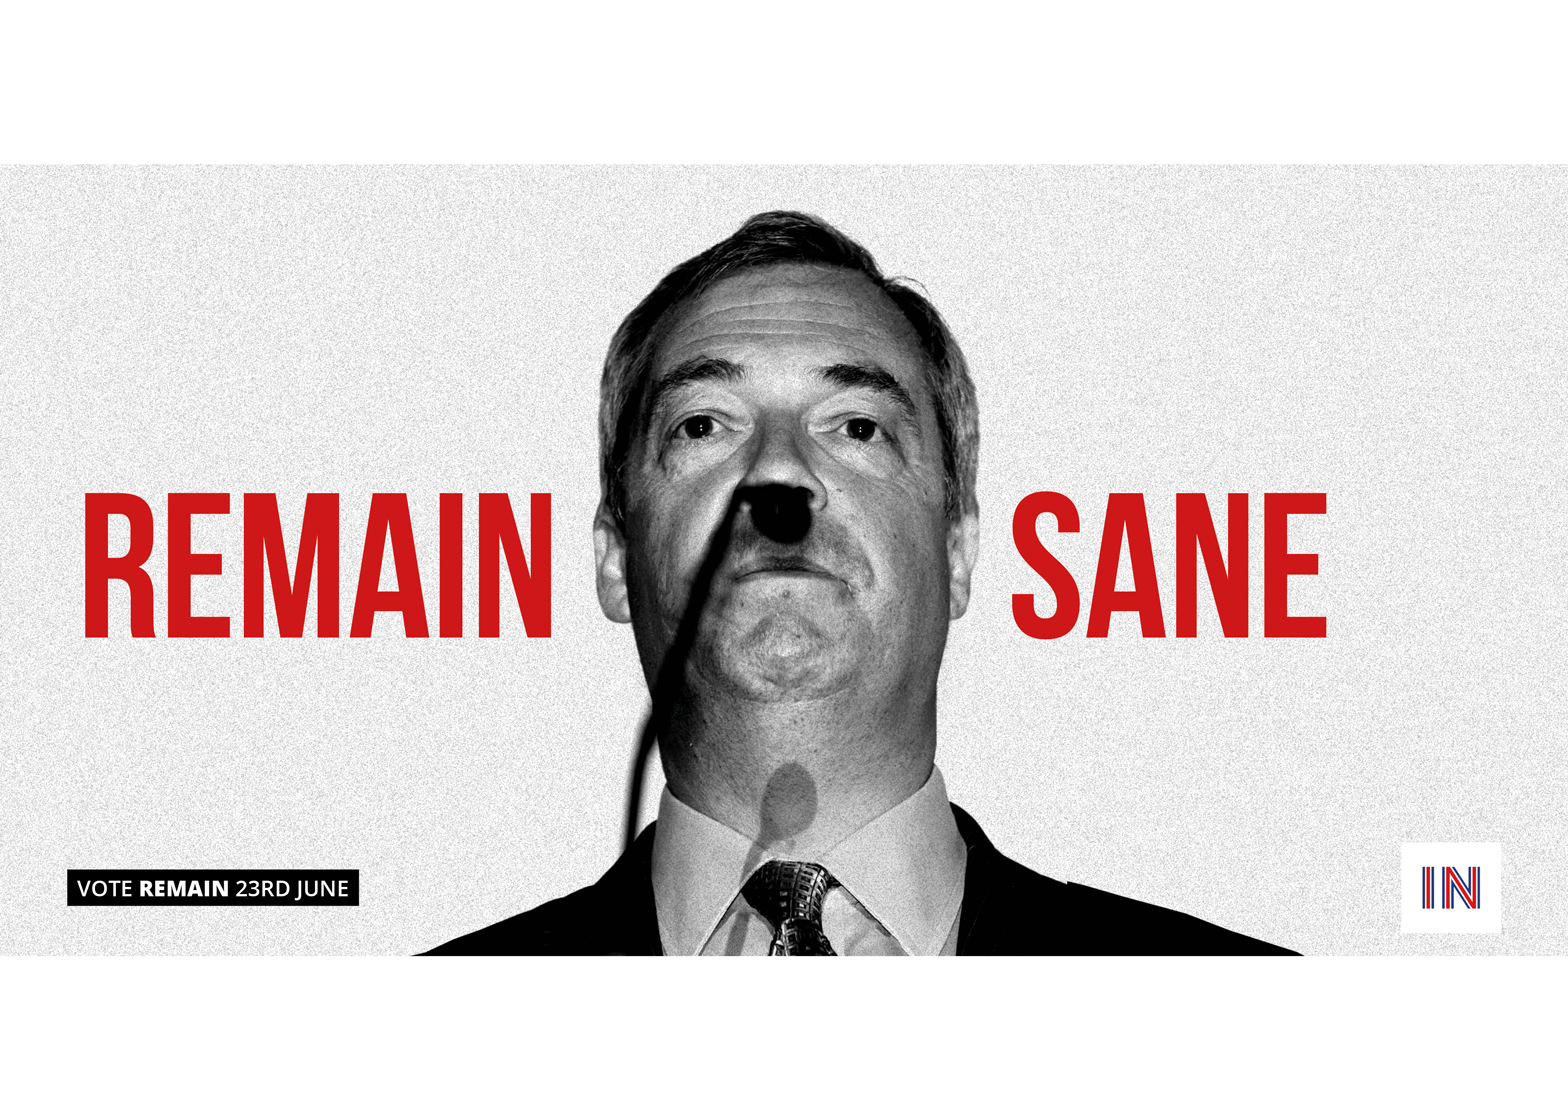 Rejected Remain posters